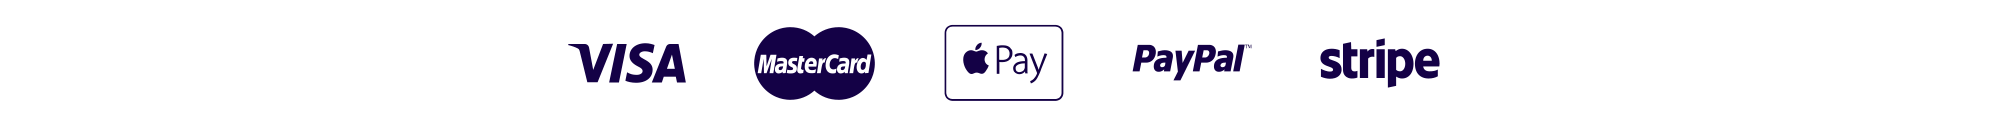 payicons_row.png